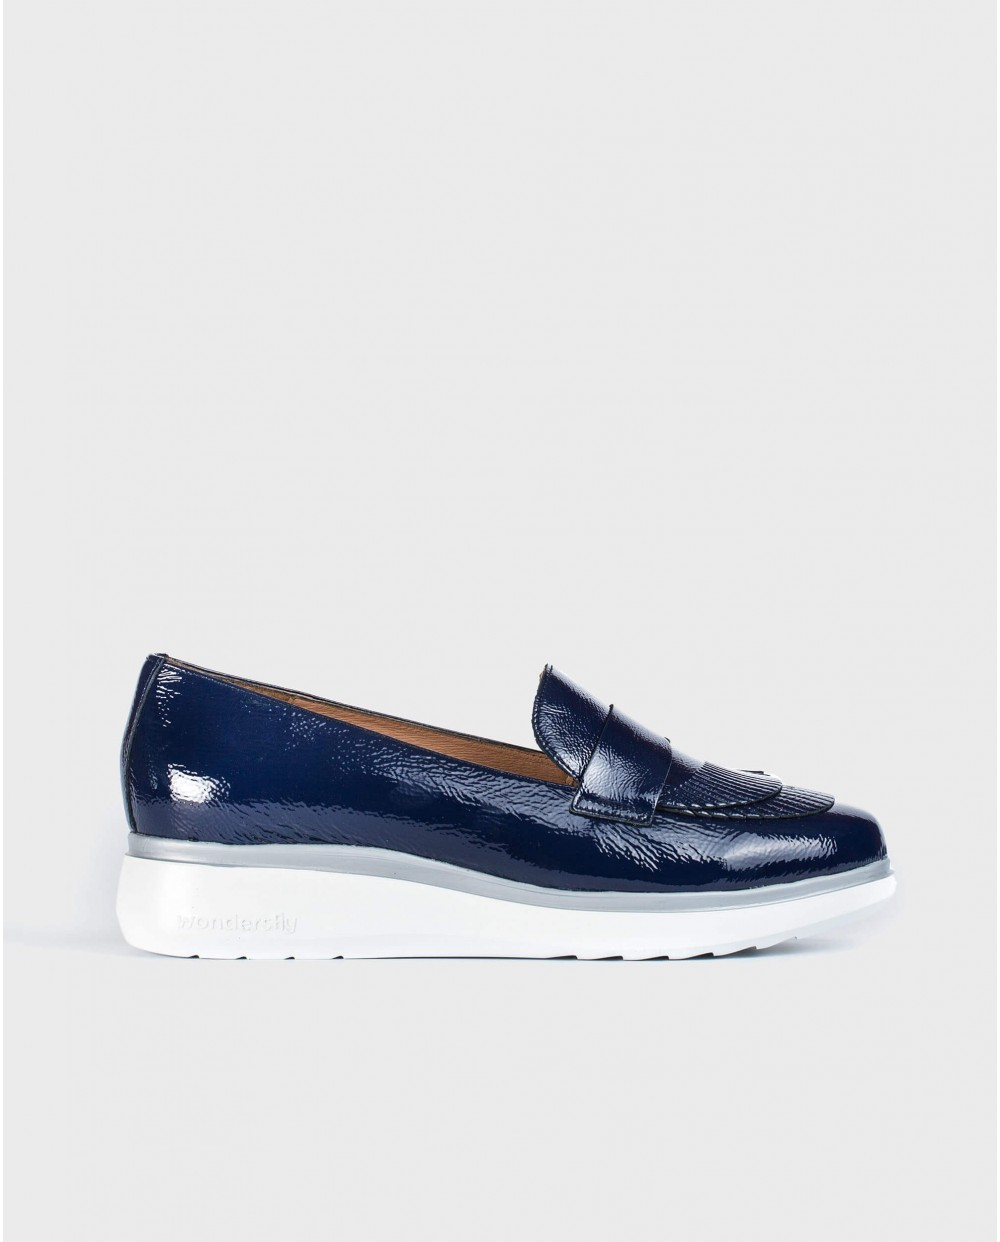 Wonders-Women-Patent leather moccasins with fringe detail